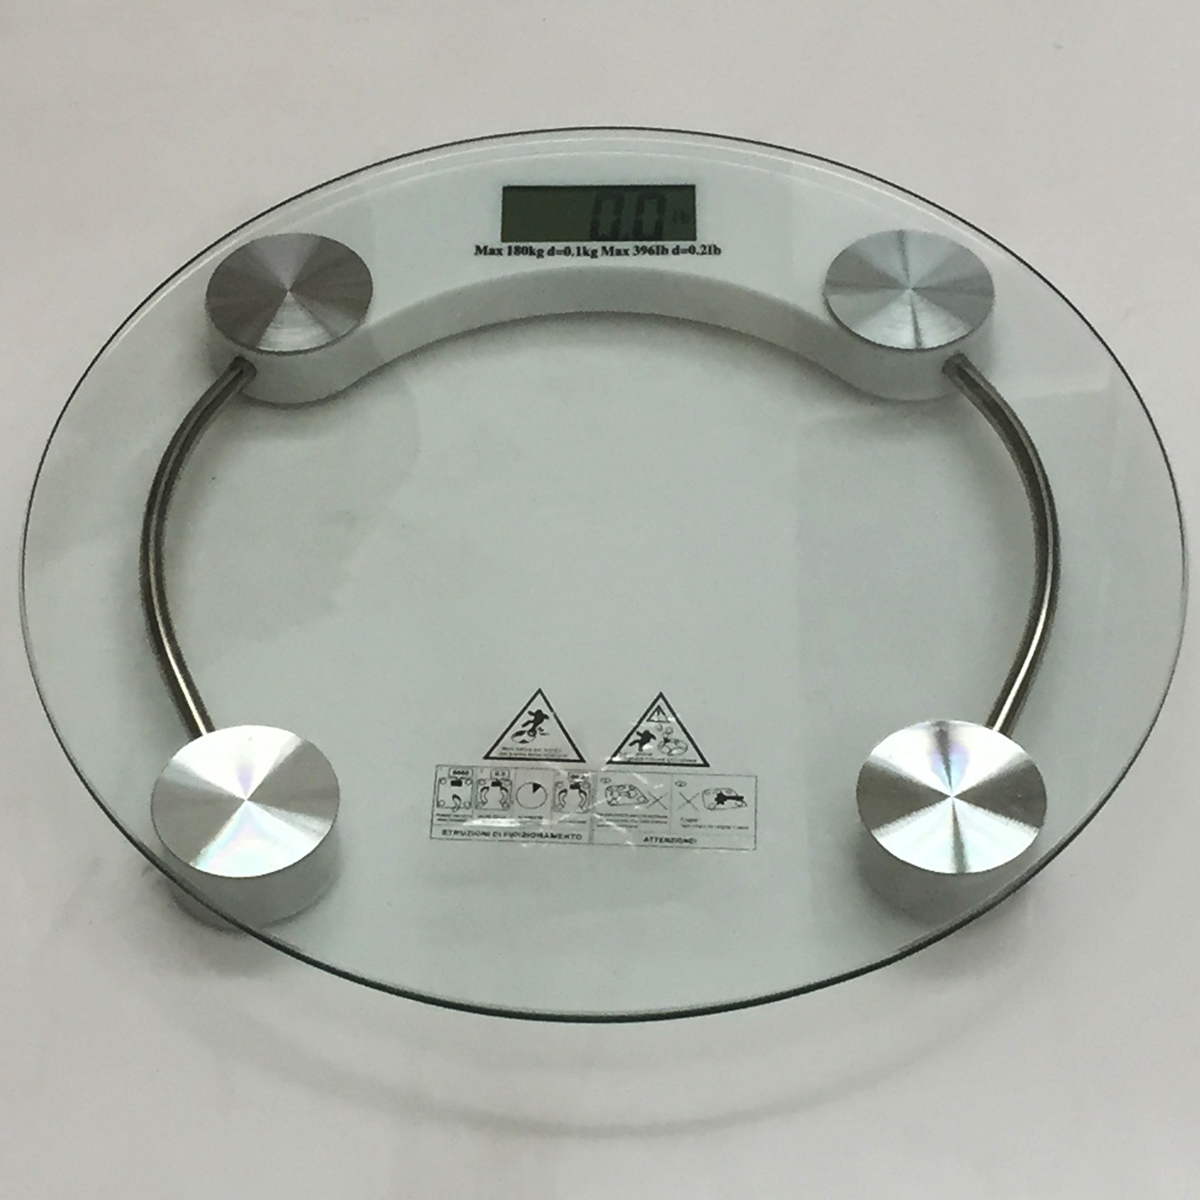 396lb Bathroom Personal Digital Body Weight Scale Safty Glass With LCD